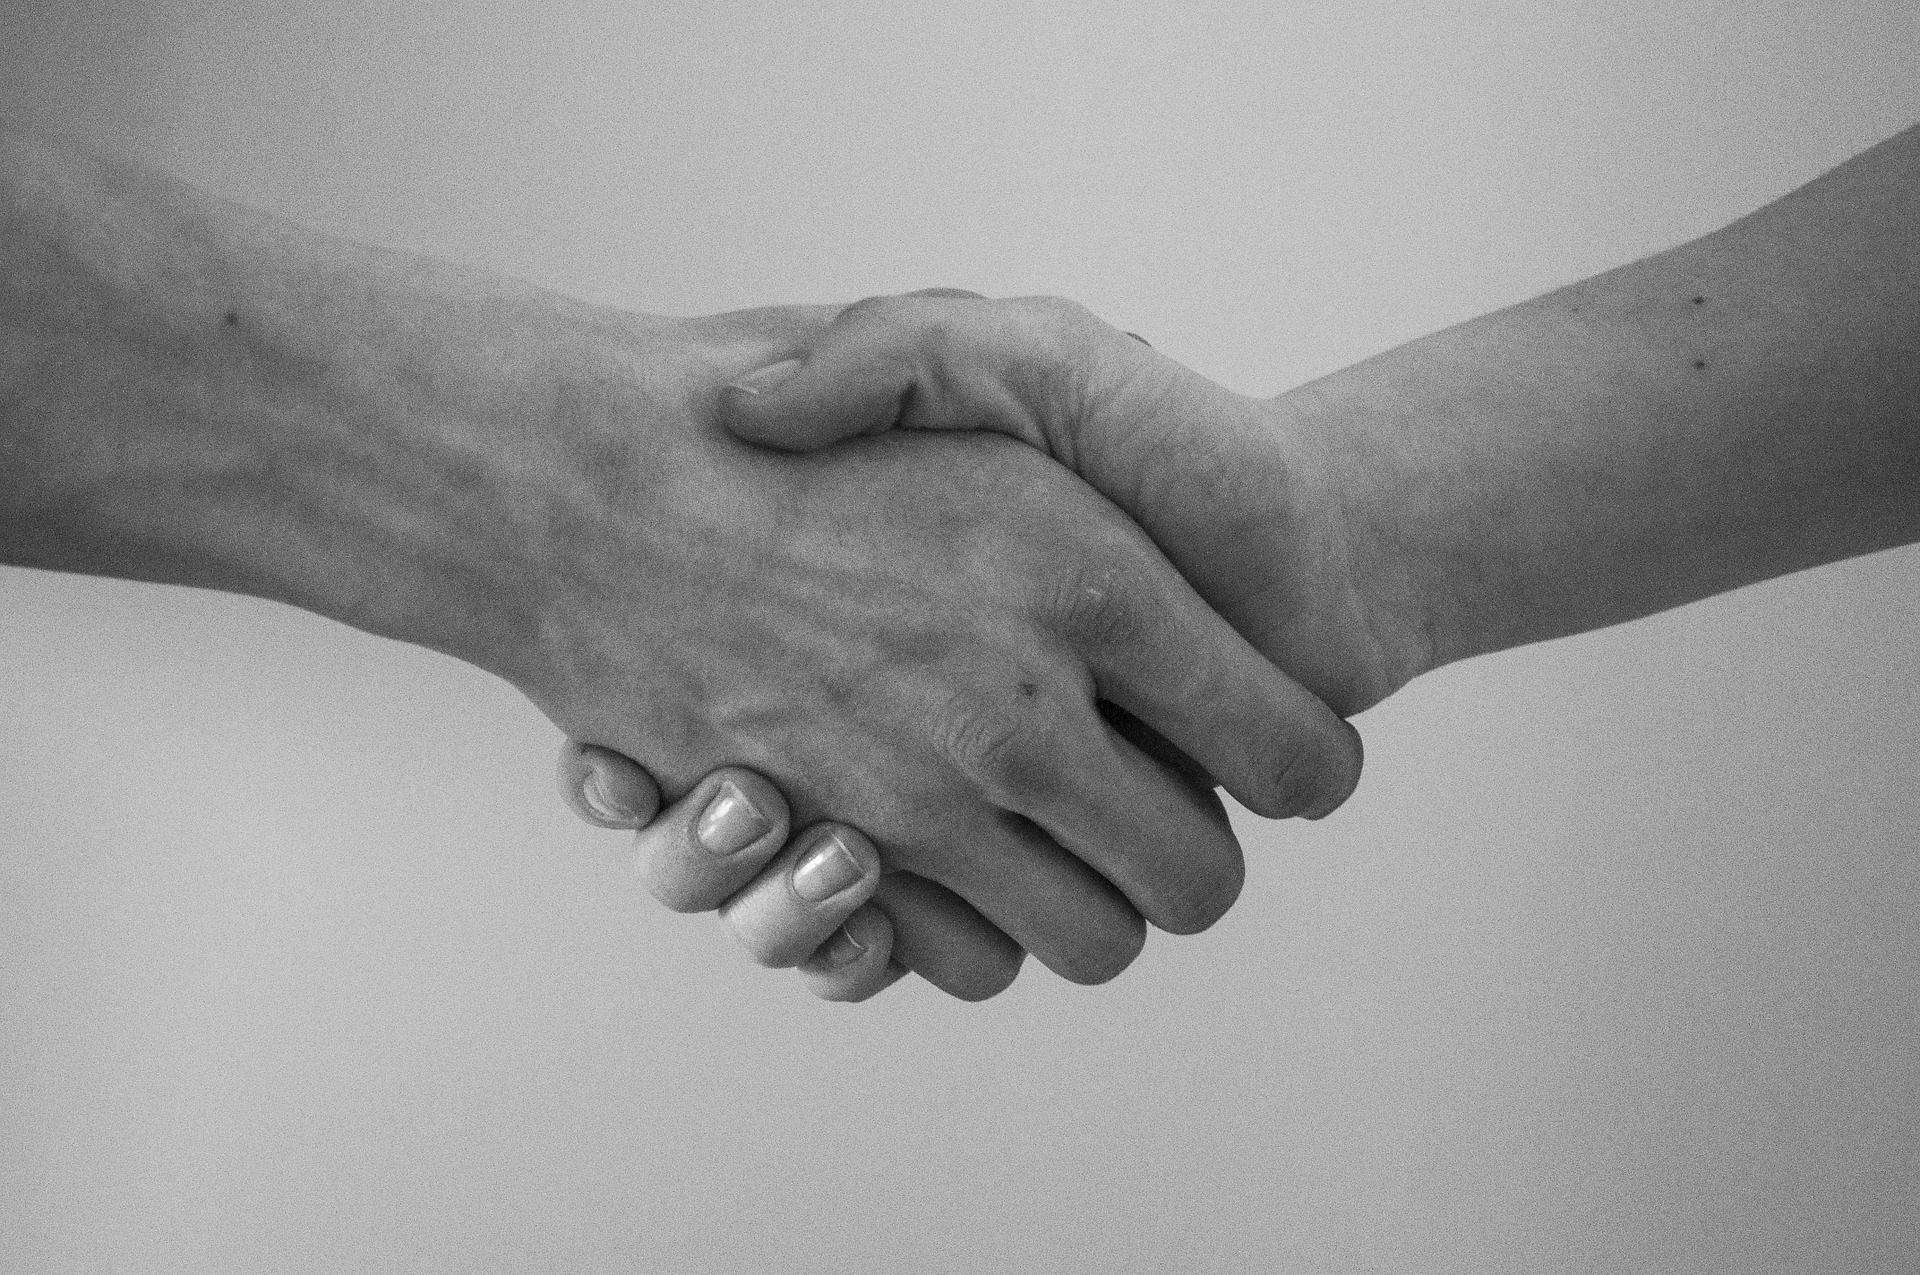 Marital Settlement Agreement - image shows two adults shaking hands